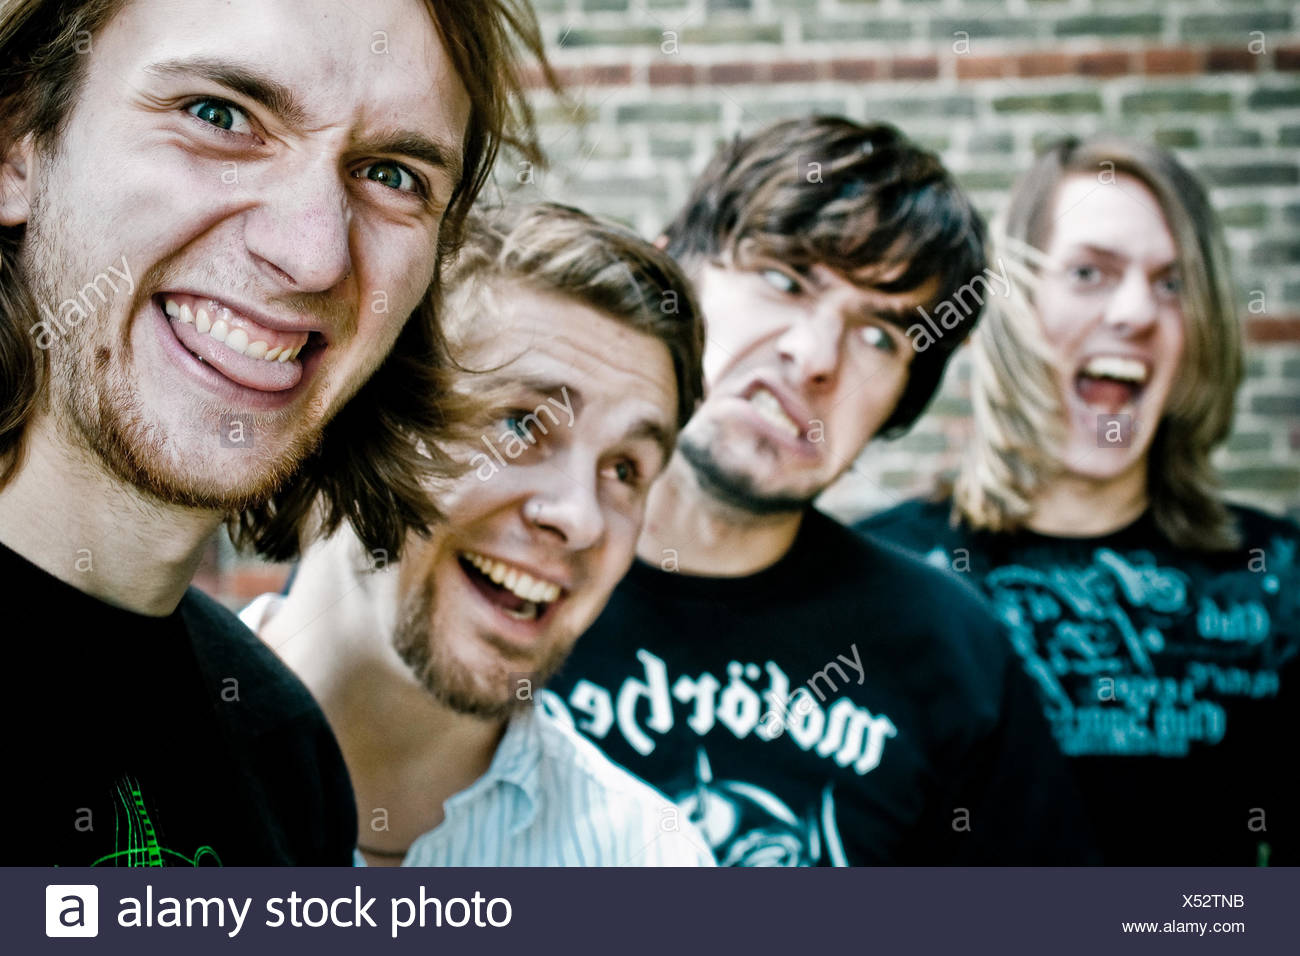 friendship,youth culture,rocker,music band - Stock Image